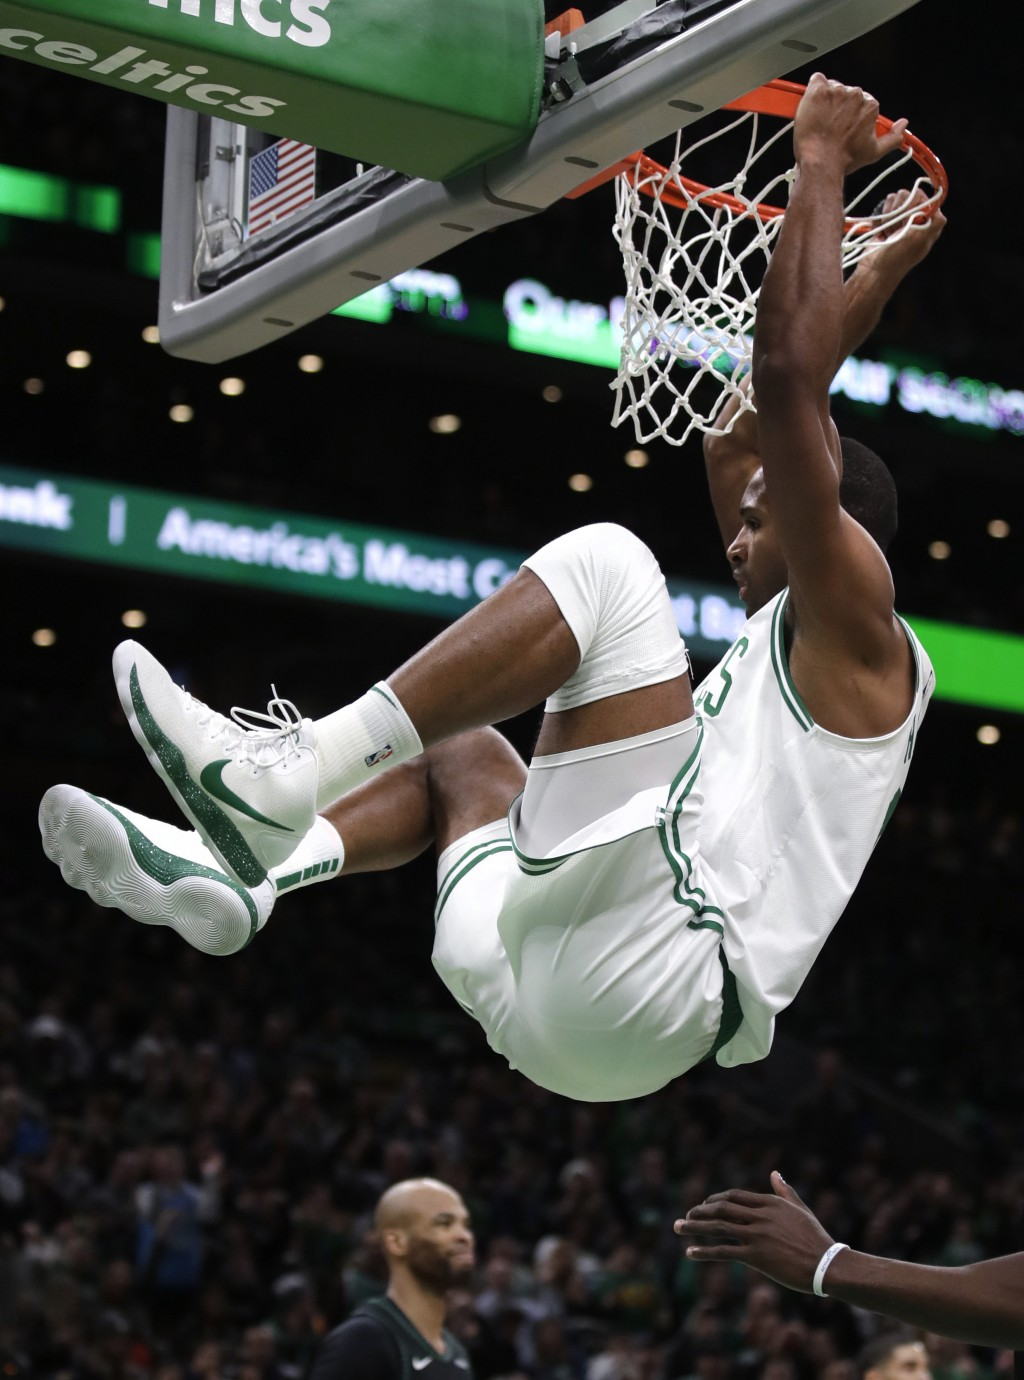 Boston Celtics center Al Horford hangs form the rim after a dunk during the fourth quarter of the team's NBA basketball game against the Minnesota Tim